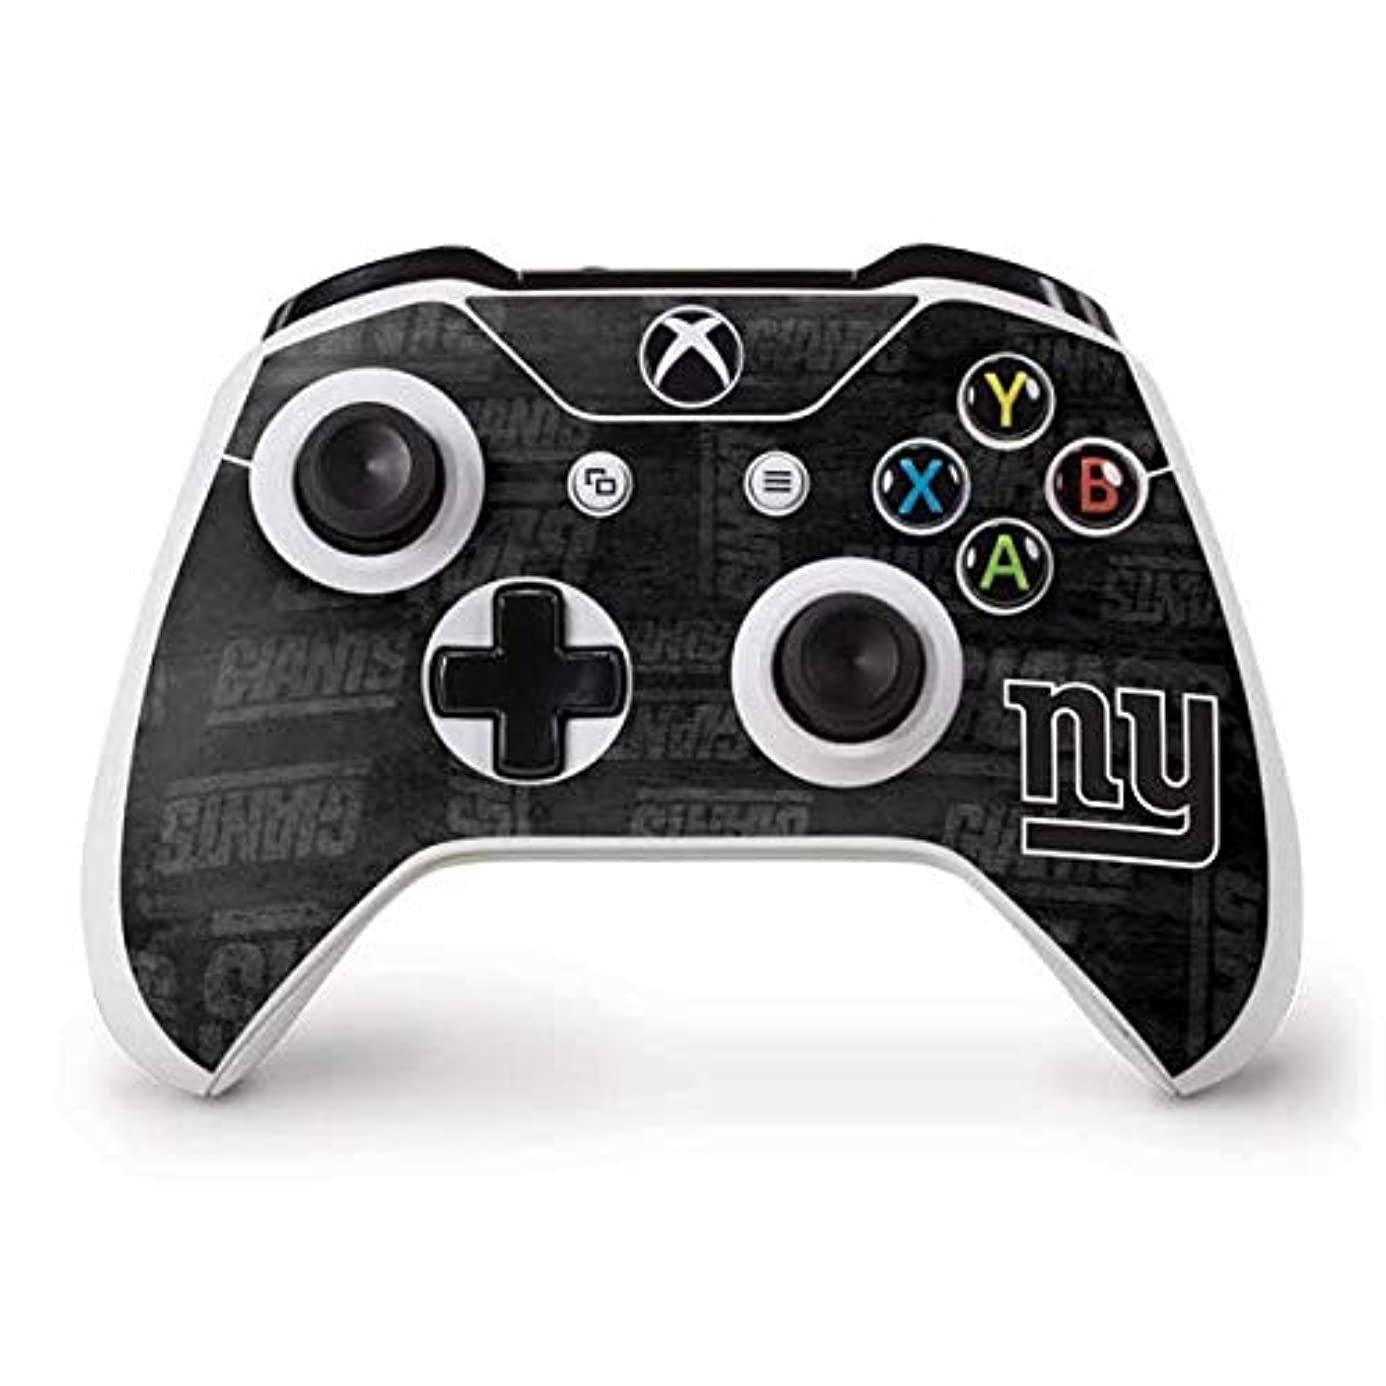 Skinit New York Giants Black & White Xbox One S Controller Skin - Officially Licensed NFL Gaming Decal - Ultra Thin, Lightweight Vinyl Decal Protection